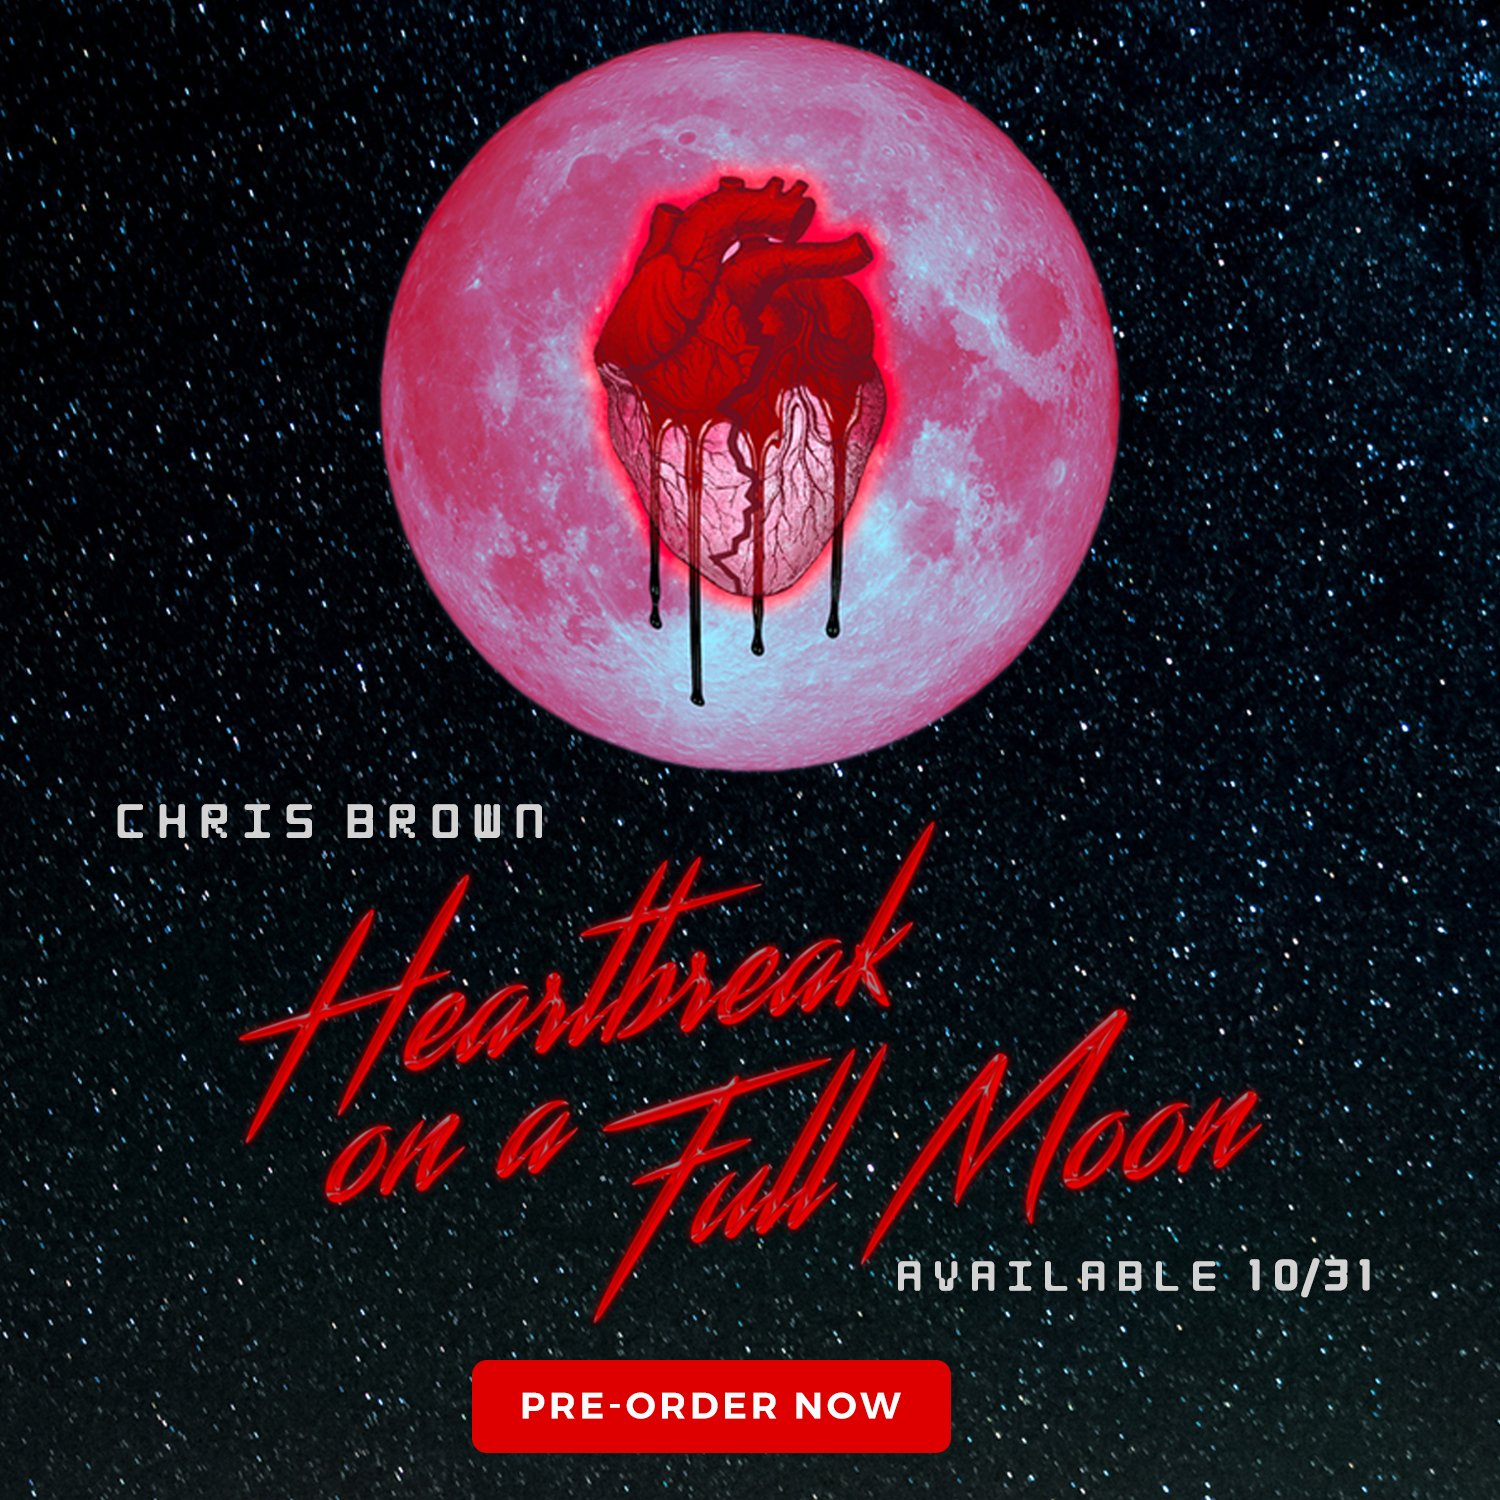 Pre-Order #HeartbreakOnAFullMoon now! Album available 10/31 �� https://t.co/DSgT1oHFQG https://t.co/euG2MWTDWO